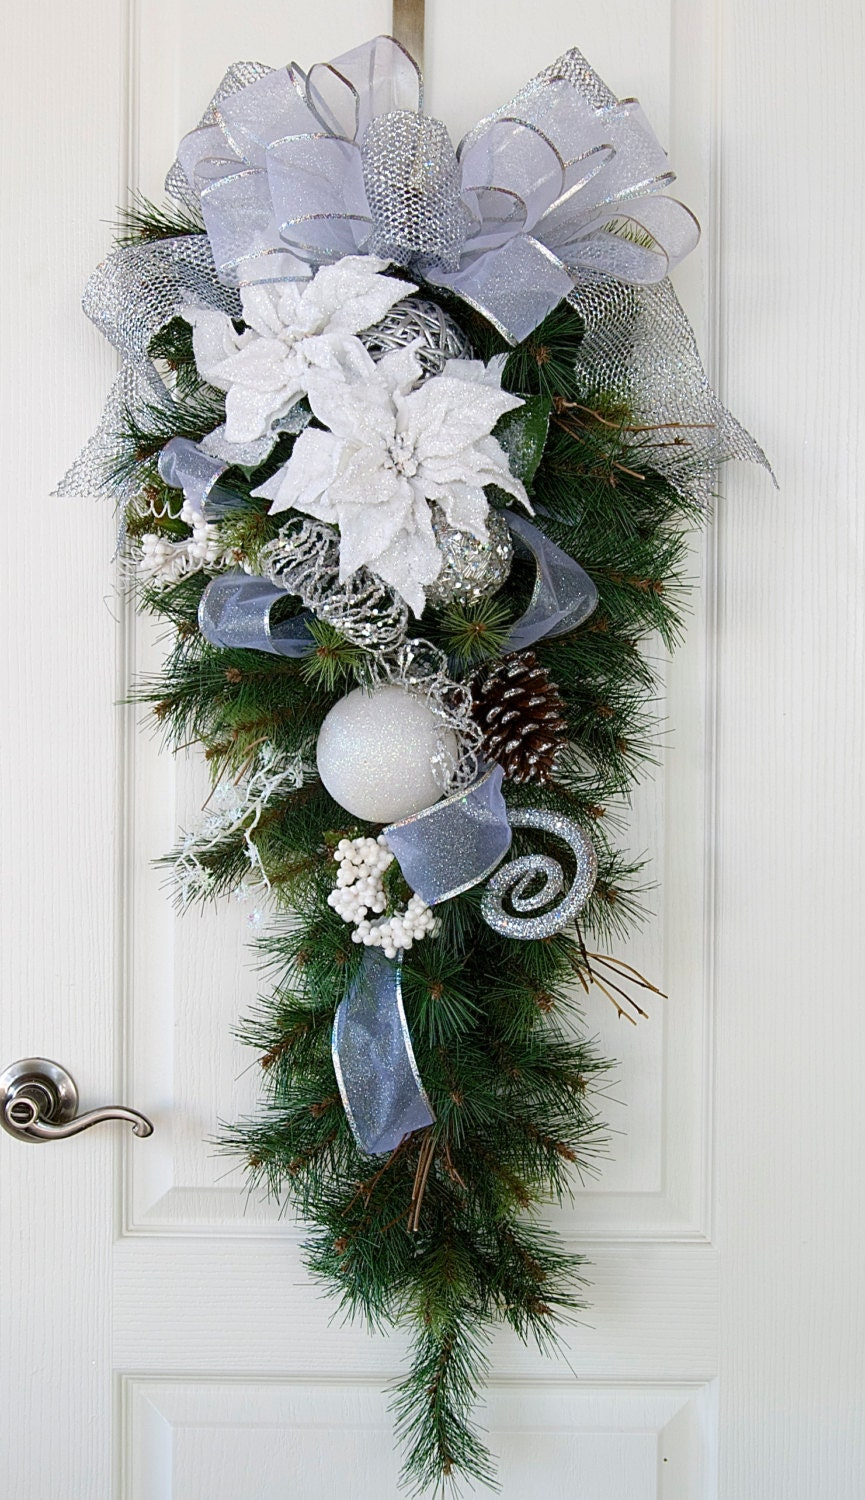 Snowy Christmas Swag Silver And White Christmas Wreath